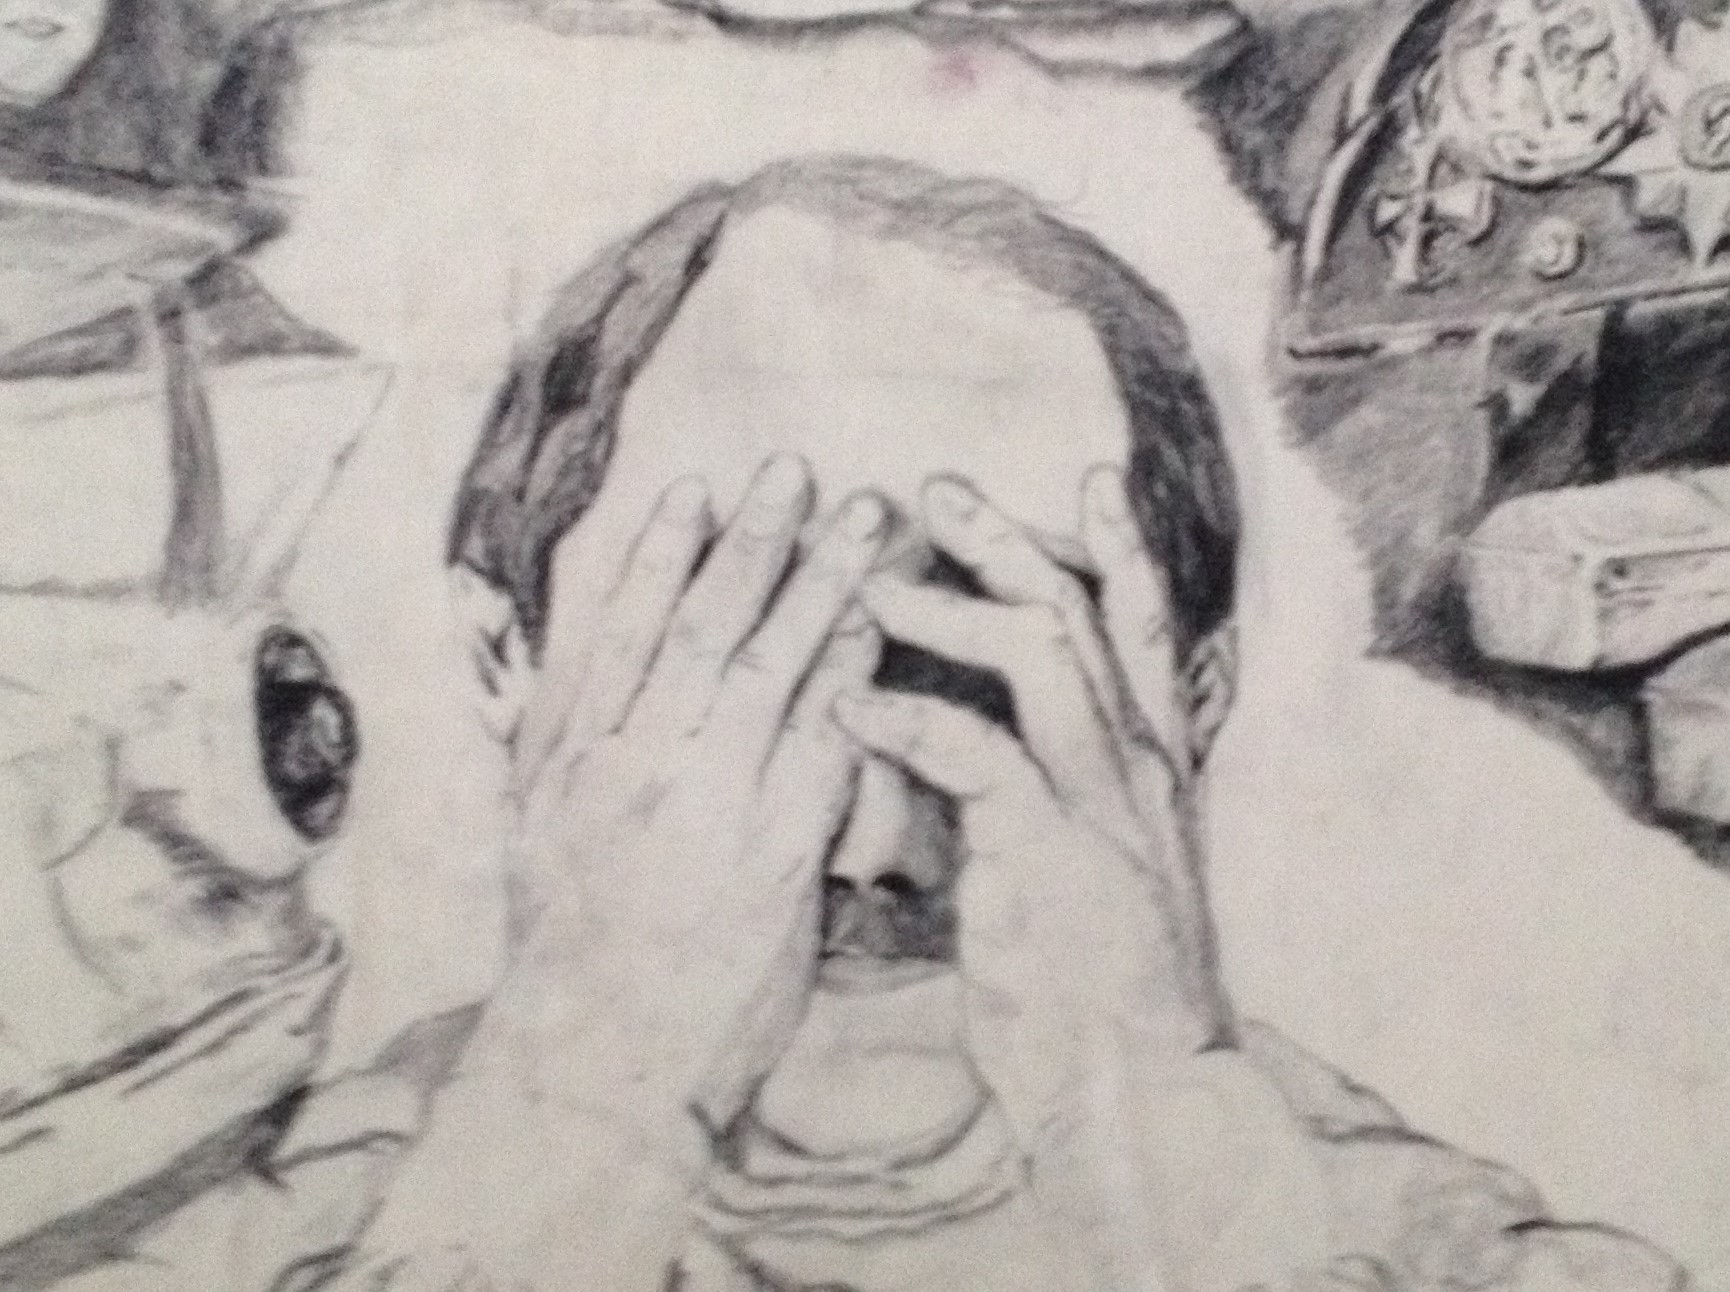 A close-up sketch of a man with his hands over his face, visual clutter around the perimeter of the drawing.